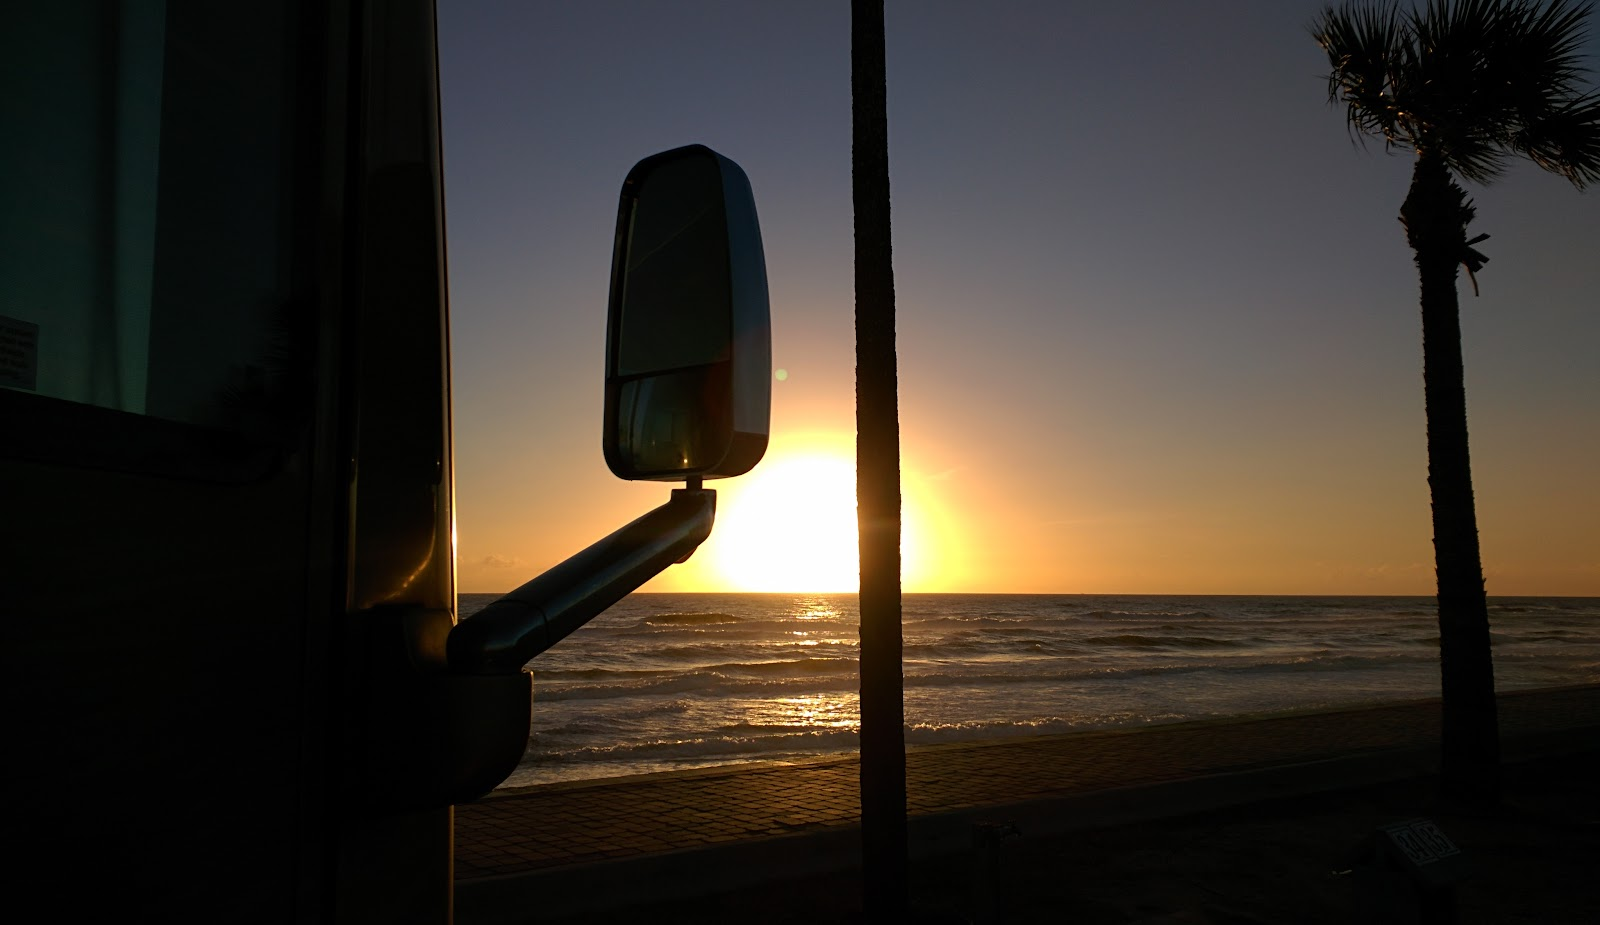 Class A RV parked at the beach during sunset